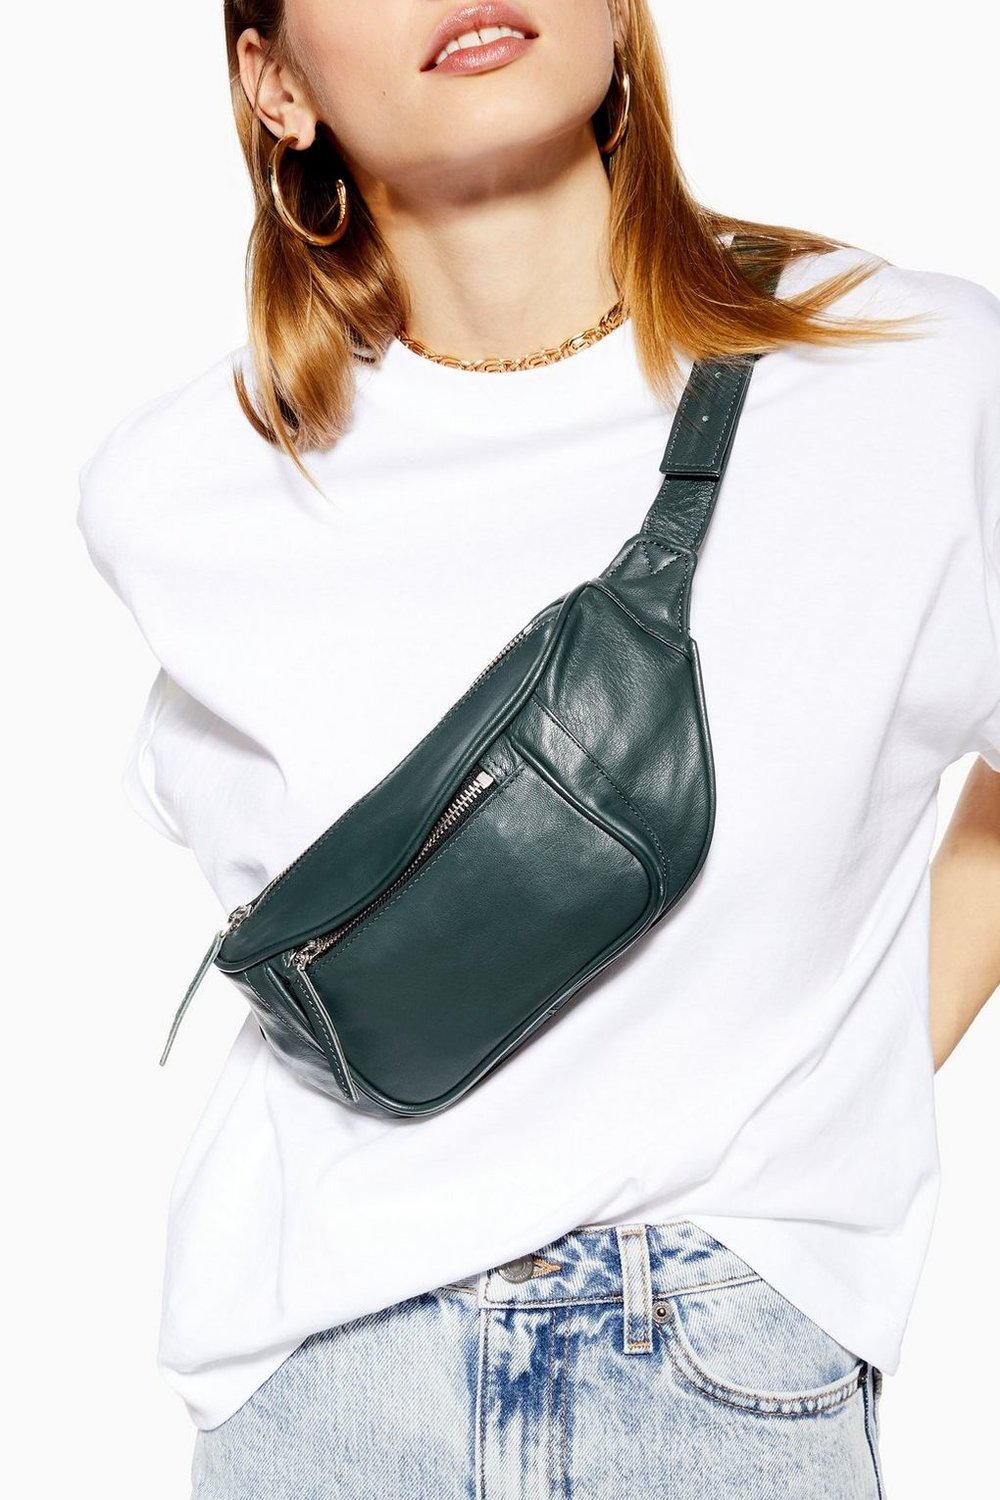 Top Shop Leather Bag  $52